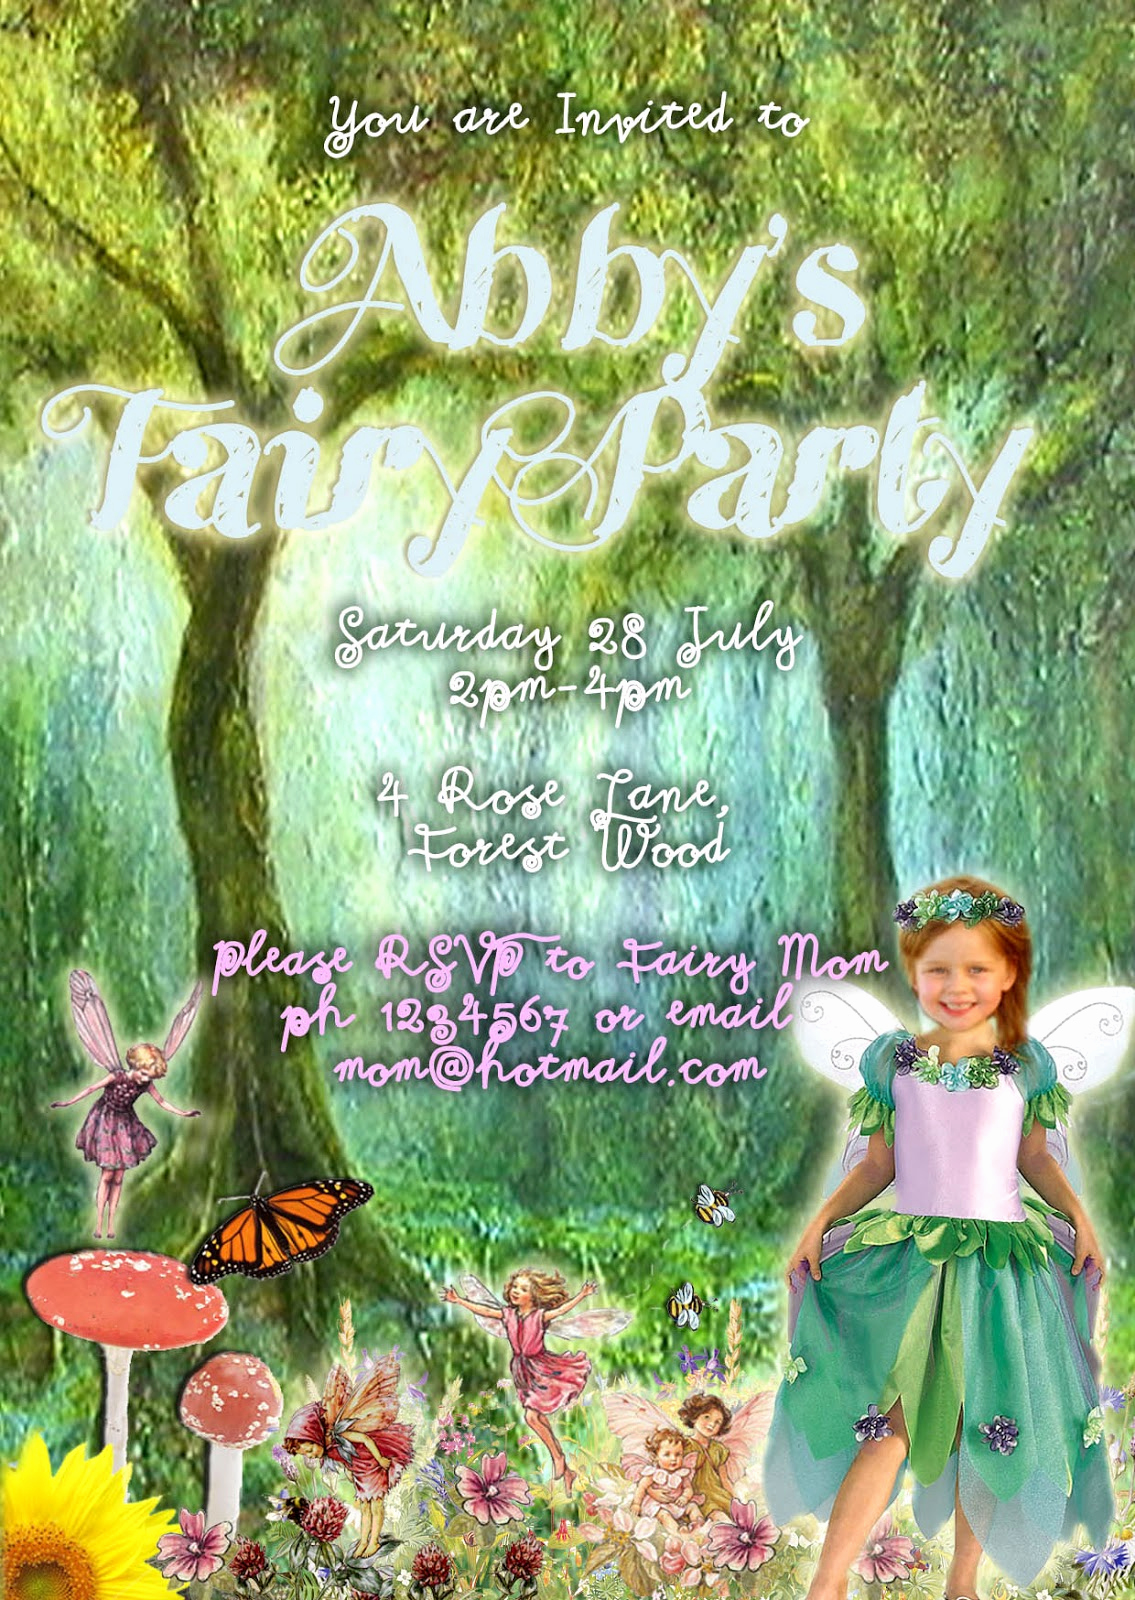 Glamorous Party Invitation Wow Fresh Great Fun Etc Fairy Party with Printables